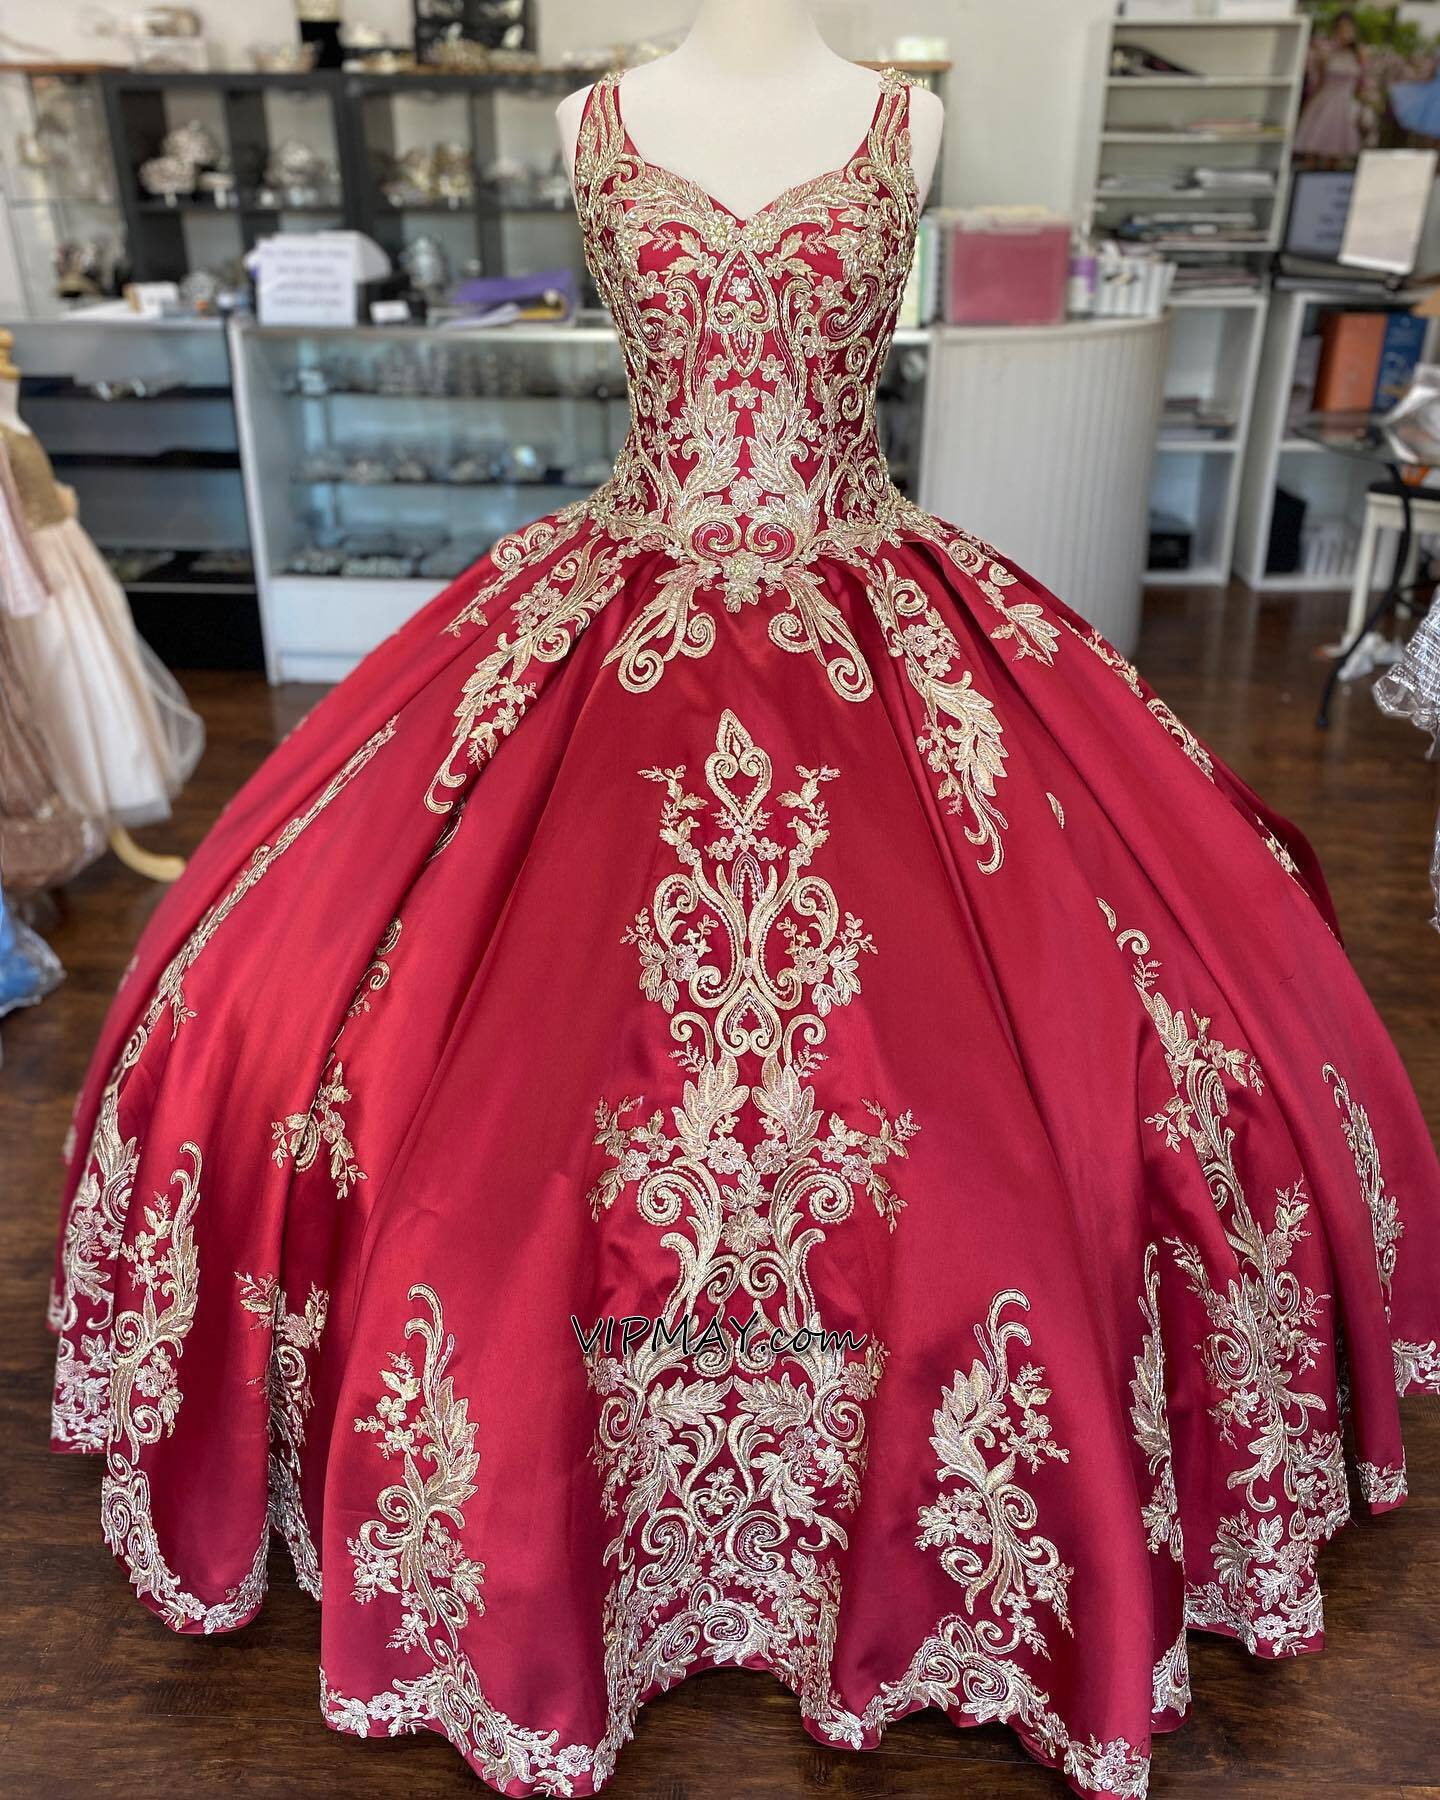 red and gold quinceanera dress,satin quinceanera dress,embroidery quinceanera dress,red quinceanera with gold embroidery,quince dress with straps,designer quinceanera dress,quinceanera dress wholesale suppliers,custom make your quinceanera dress,